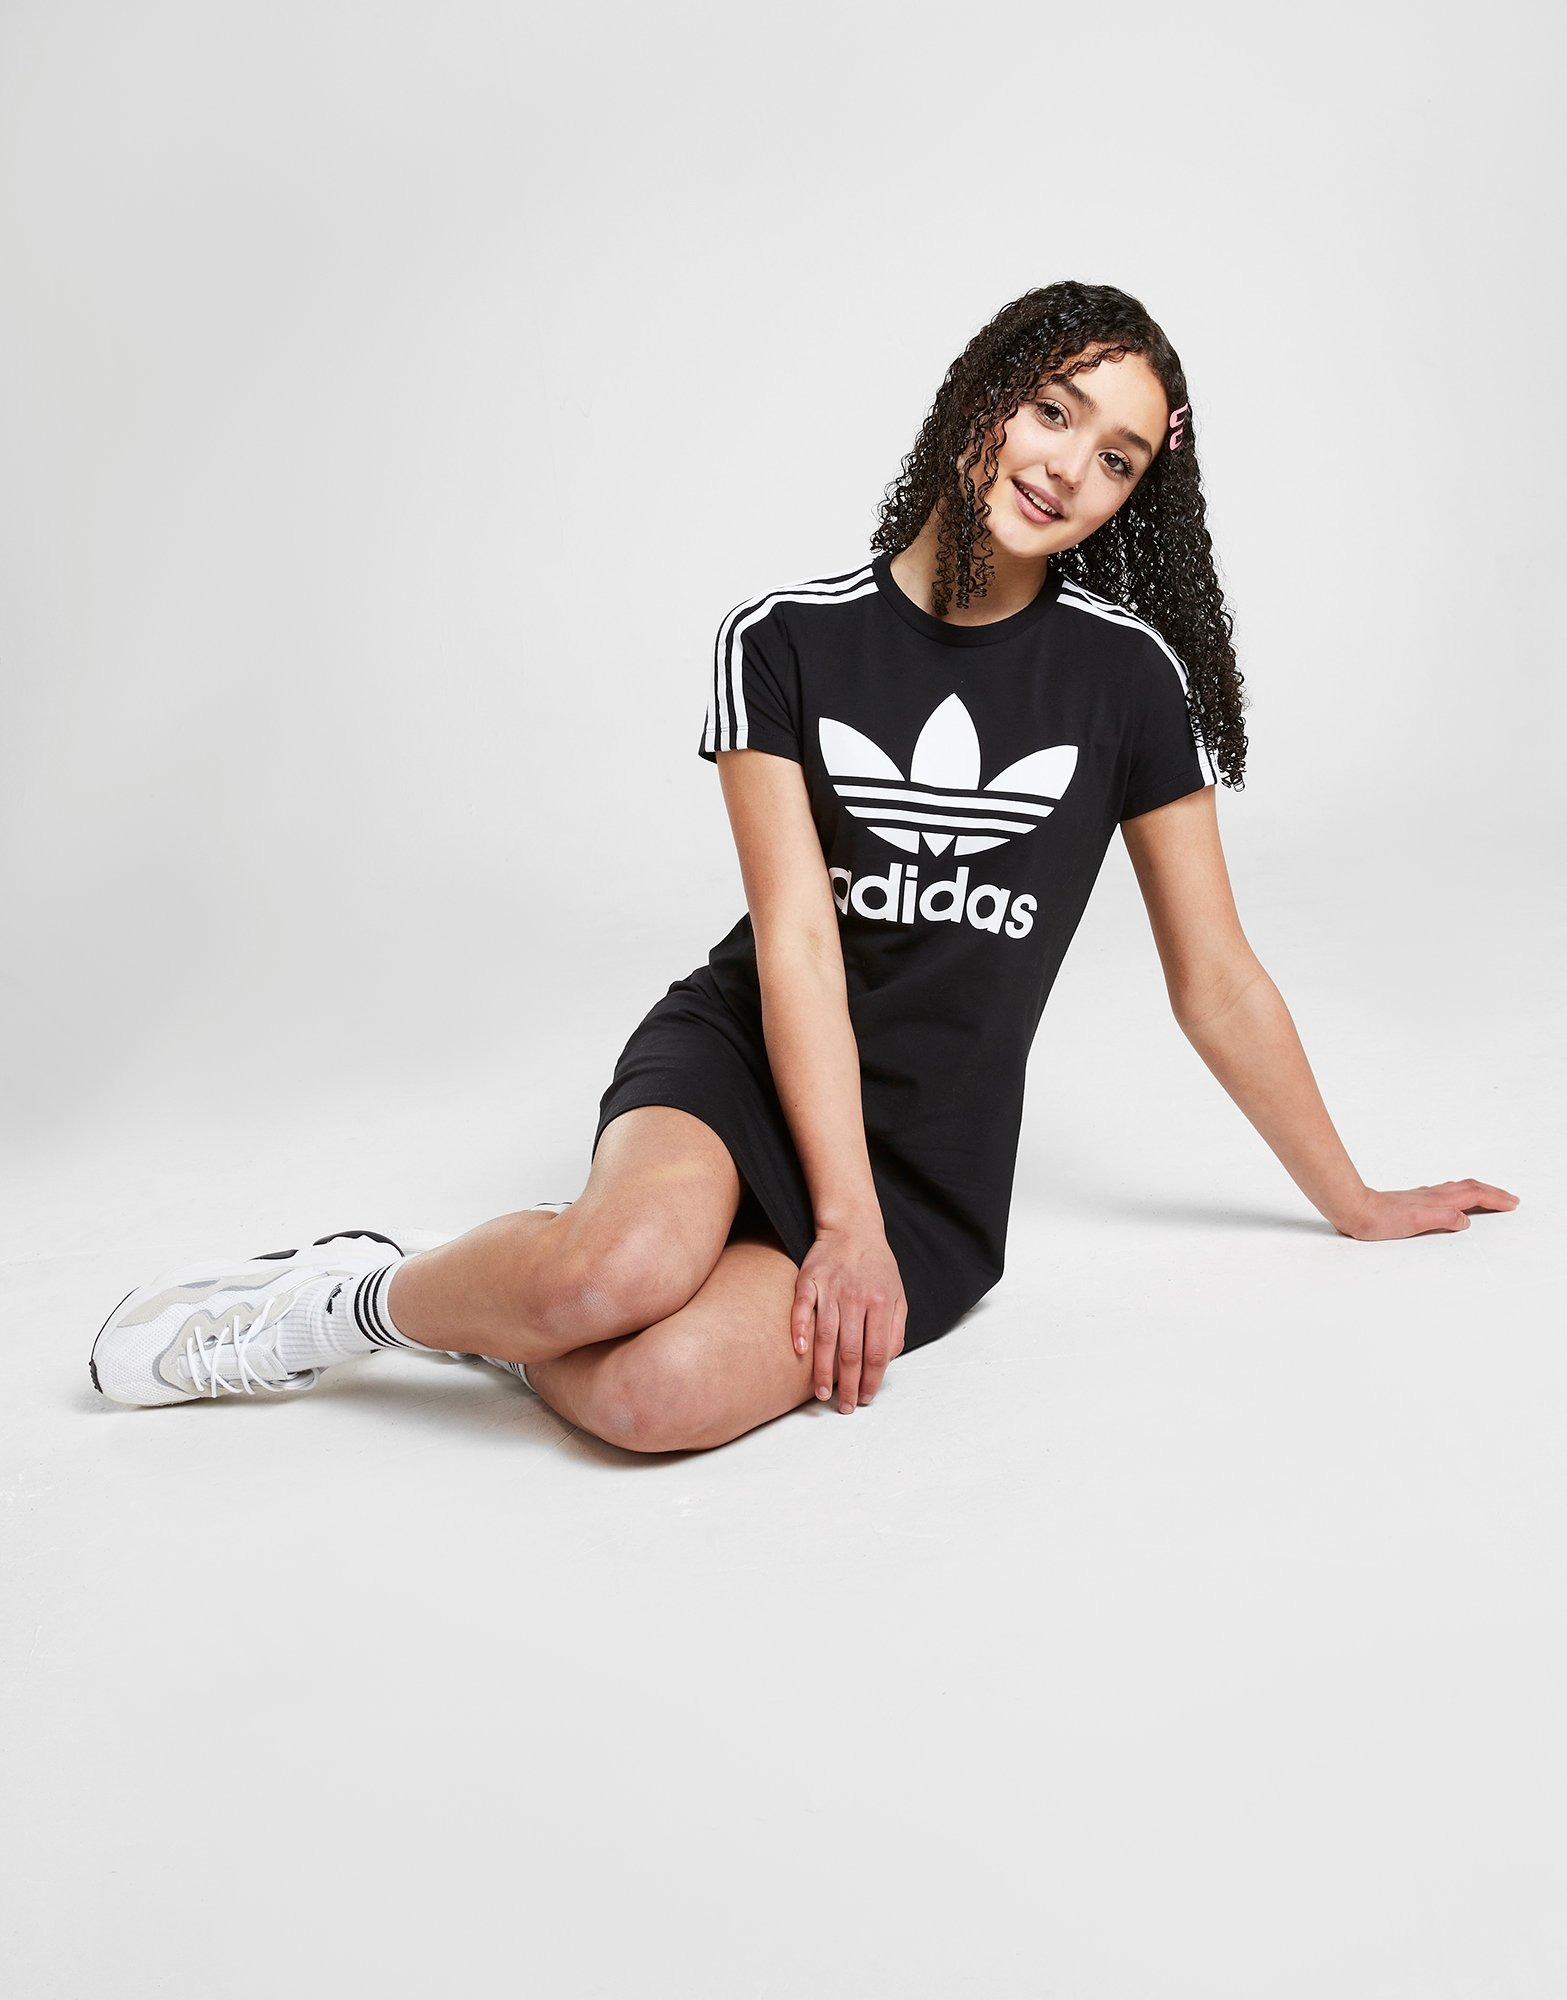 punto final por favor confirmar Tóxico  adidas Originals Girls' Skater Dress Junior | JD Sports